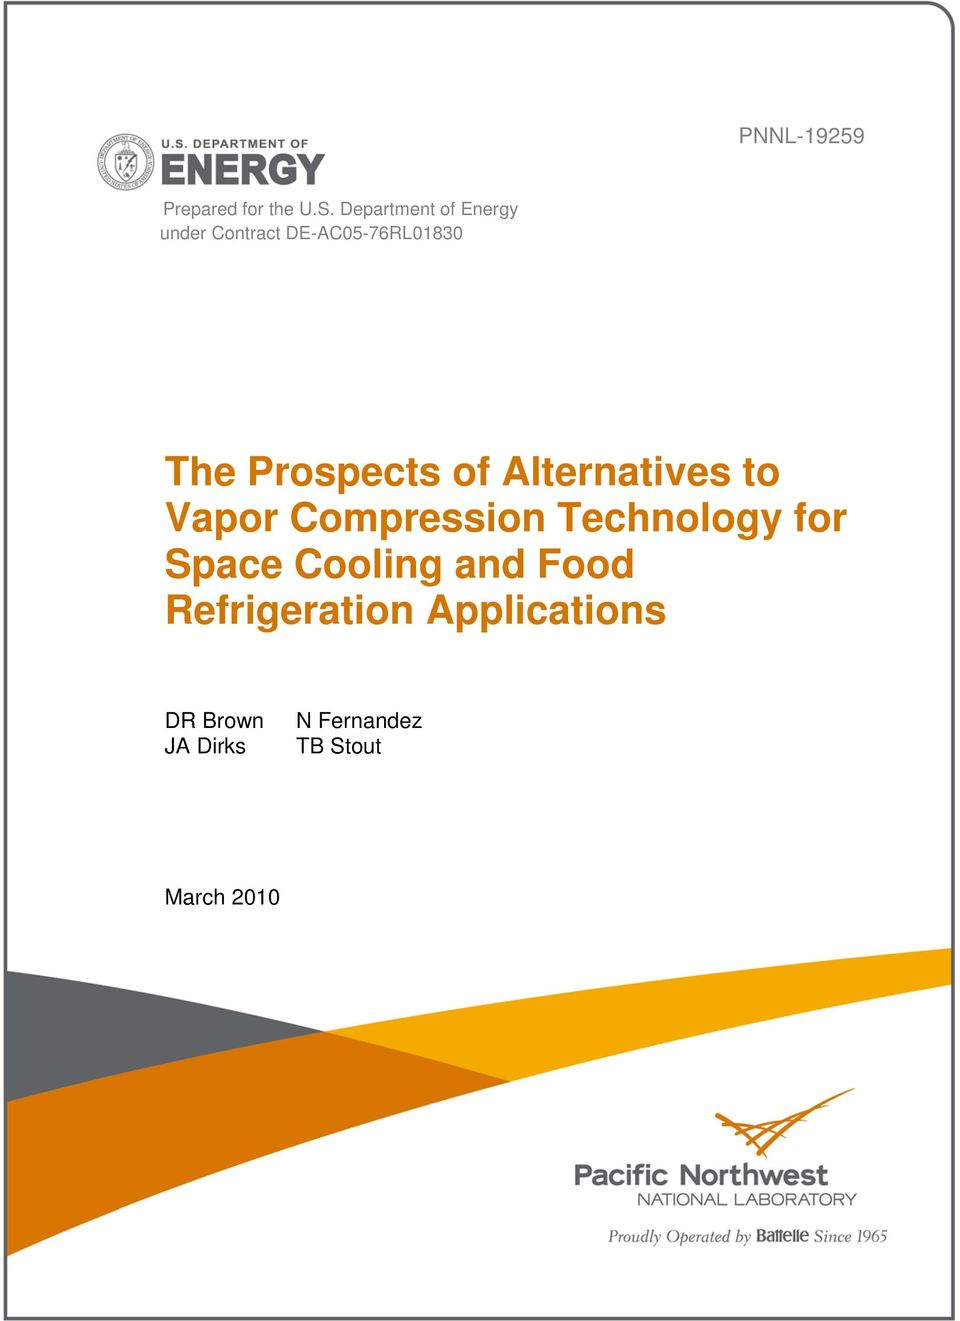 Prospects of Alternatives to Vapor Compression Technology for